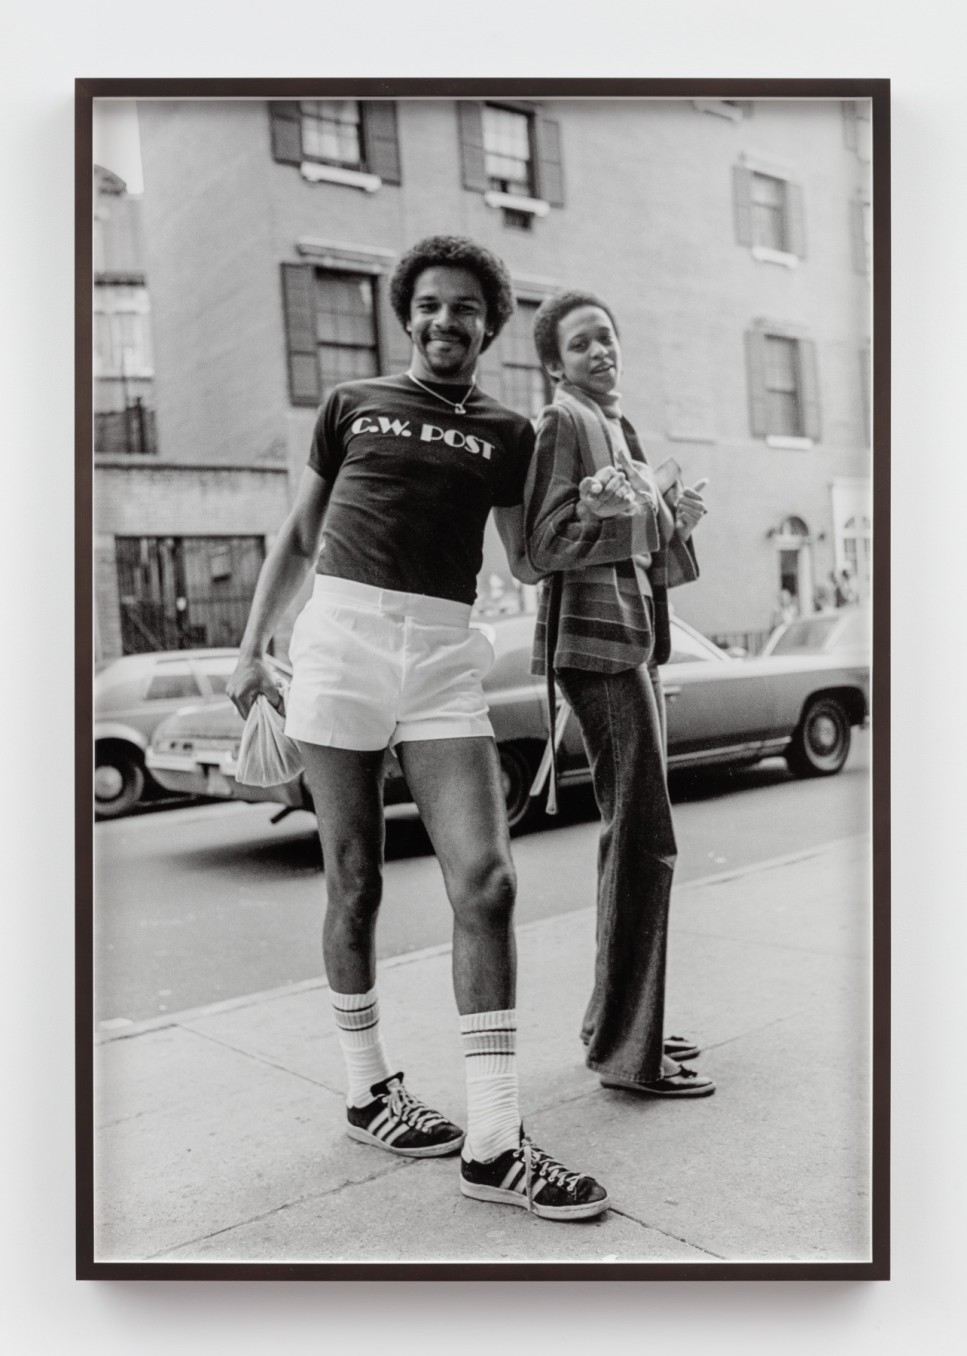 Sunil Gupta, Untitled #36 from the series Christopher Street, 1976/2019, Silver gelatin print, 91.5 x 61.4 cm, 36 1/8 x 24 1/8 in, Framed: 93.7 x 63.5 cm, 36 7/8 x 25 in, Edition of 5 plus 1 artist's proof